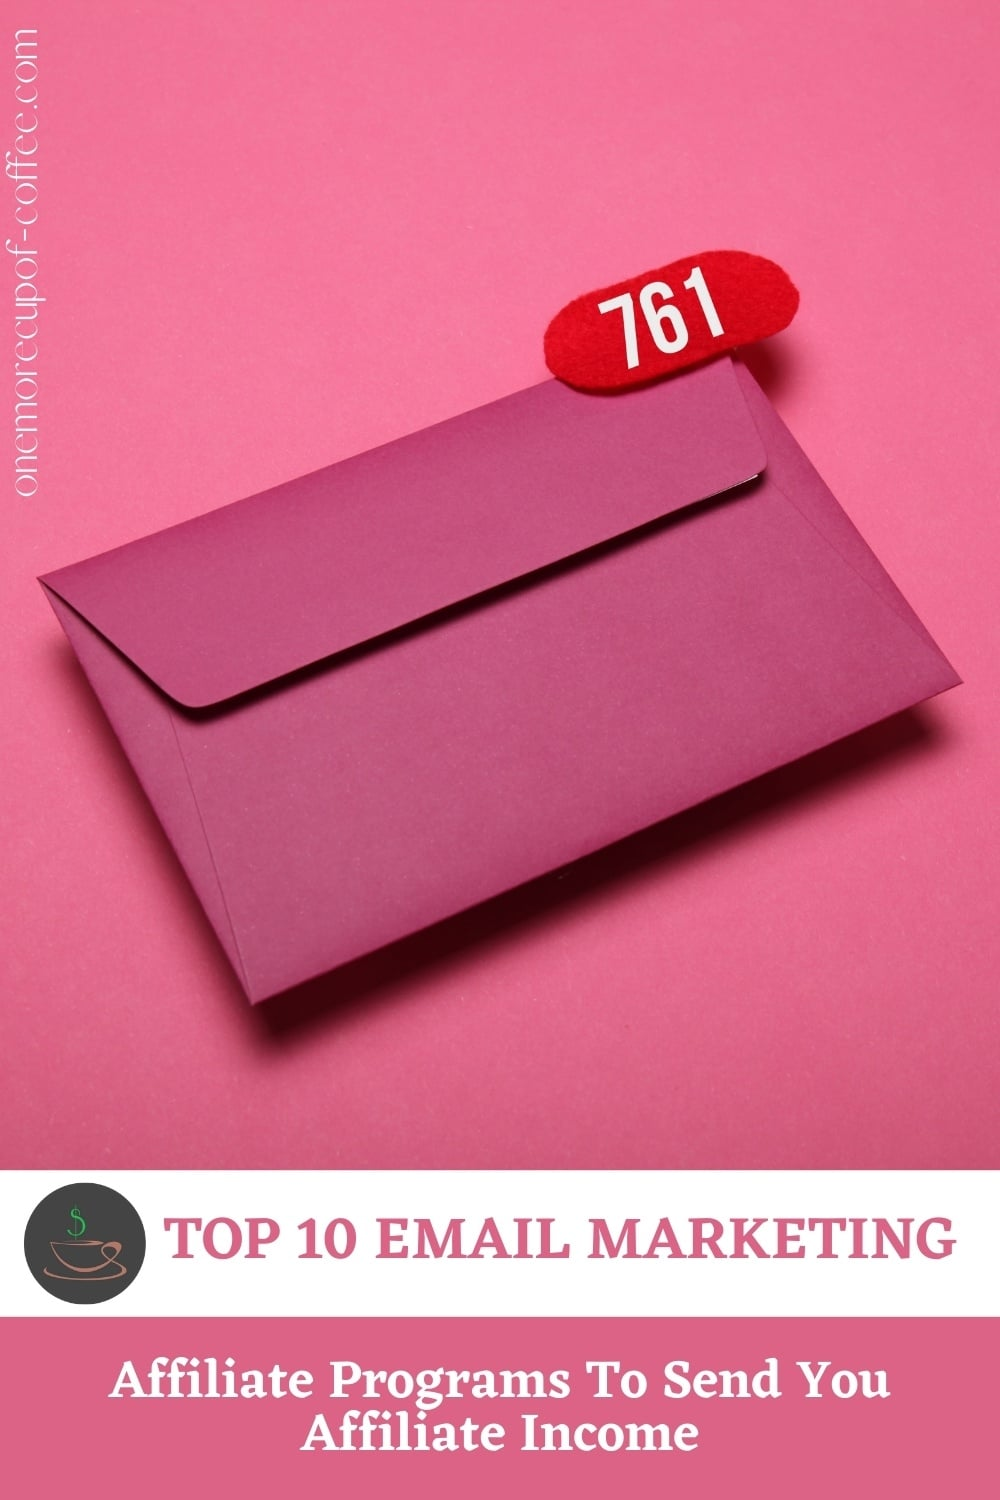 on a pink background is a dark pink envelope signifying email with red counter on its upper right corner, with text overlay in white banner